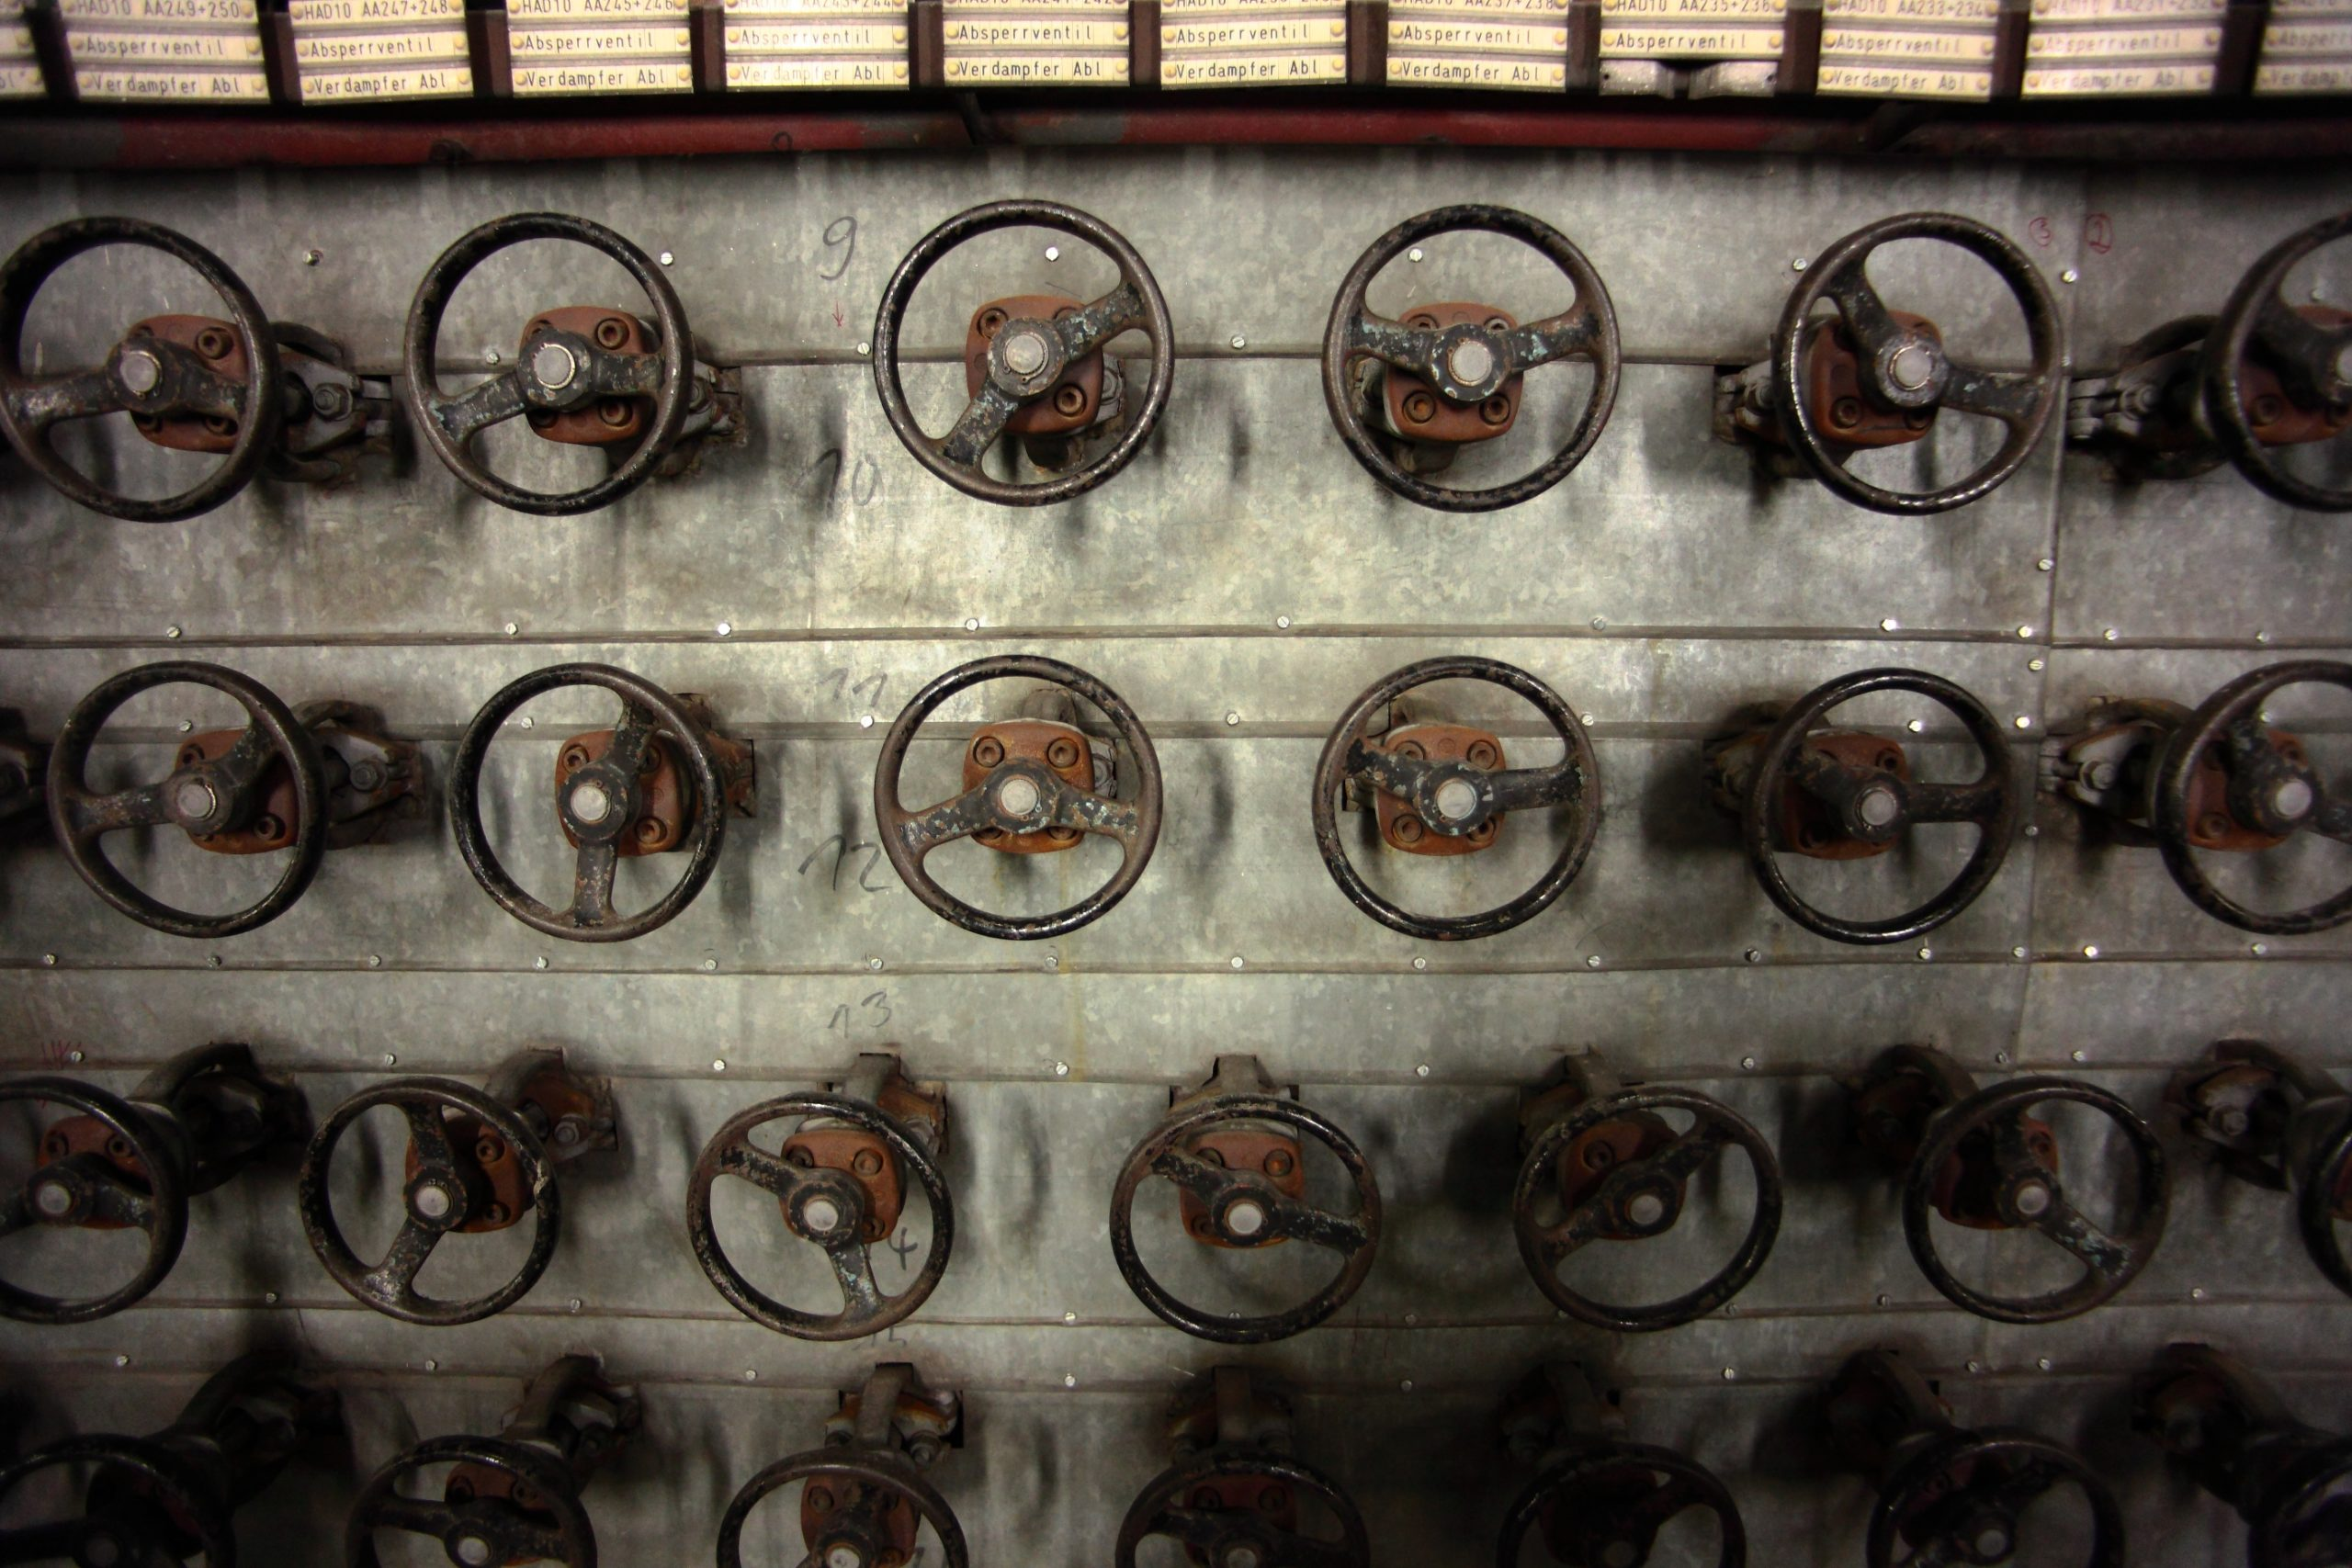 A wall full of steering wheels